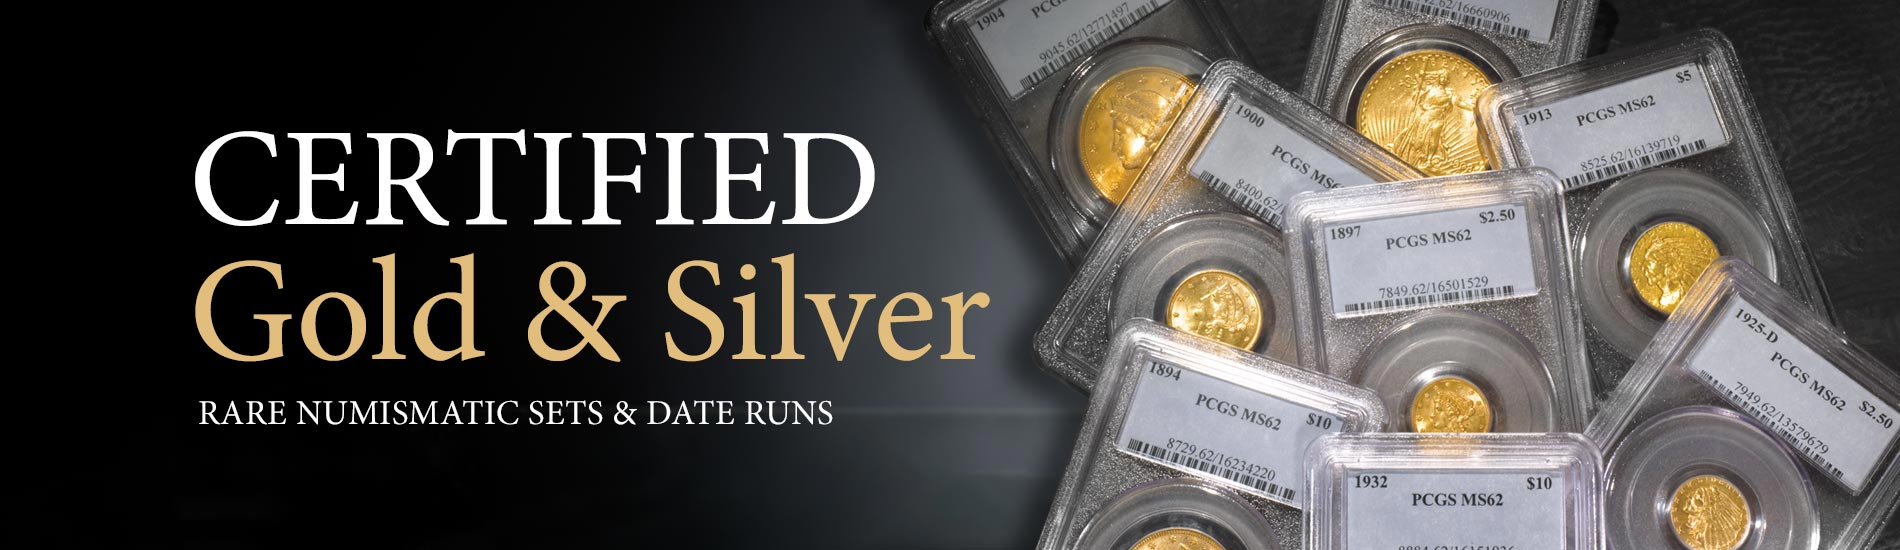 Certified Gold and Silver Coins, Rare Numismatic Sets and Date Runs